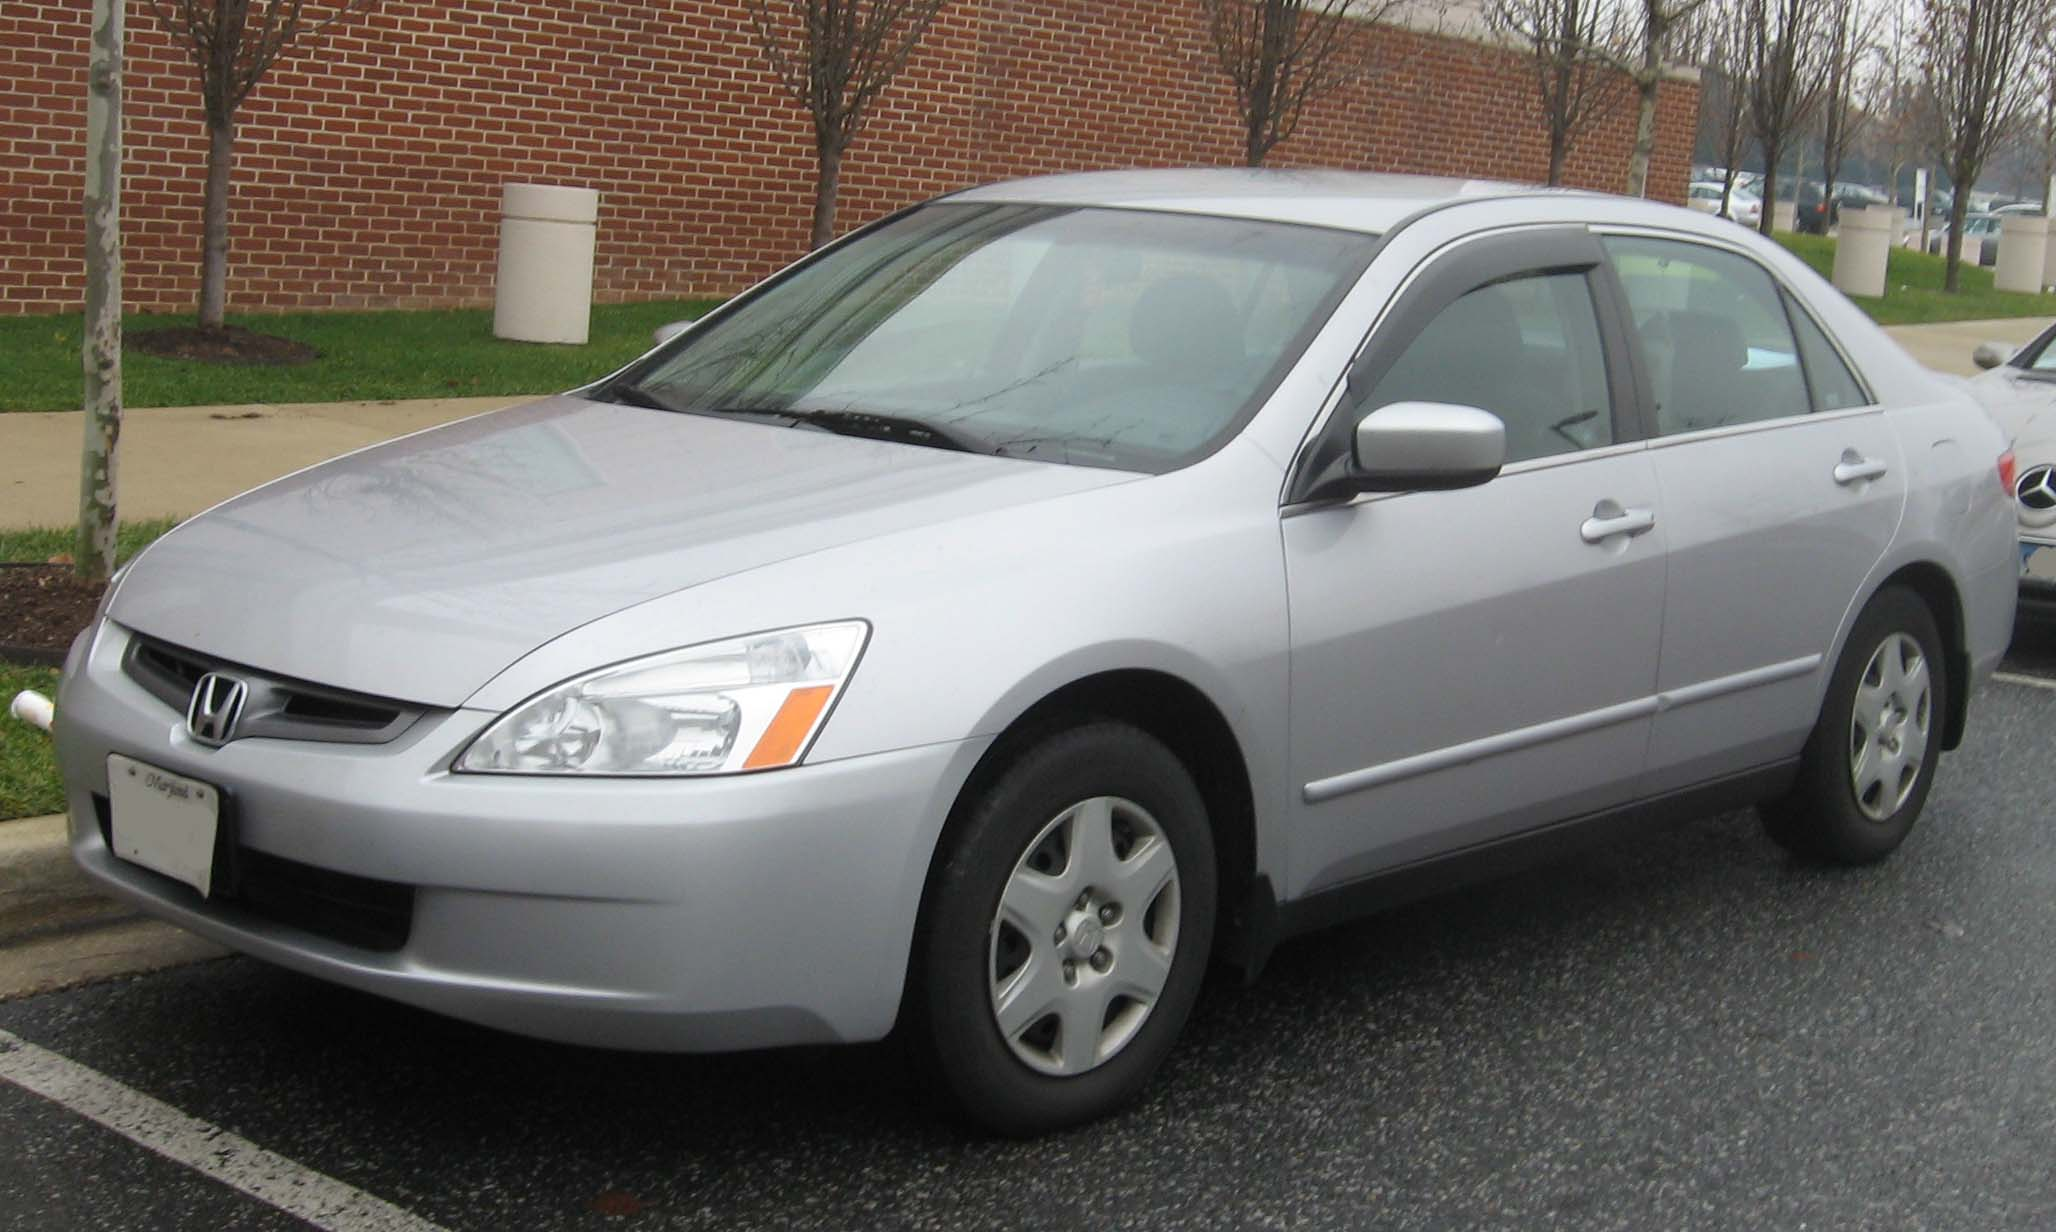 Lovely Ficheiro:2003 2004 Honda Accord LX Sedan